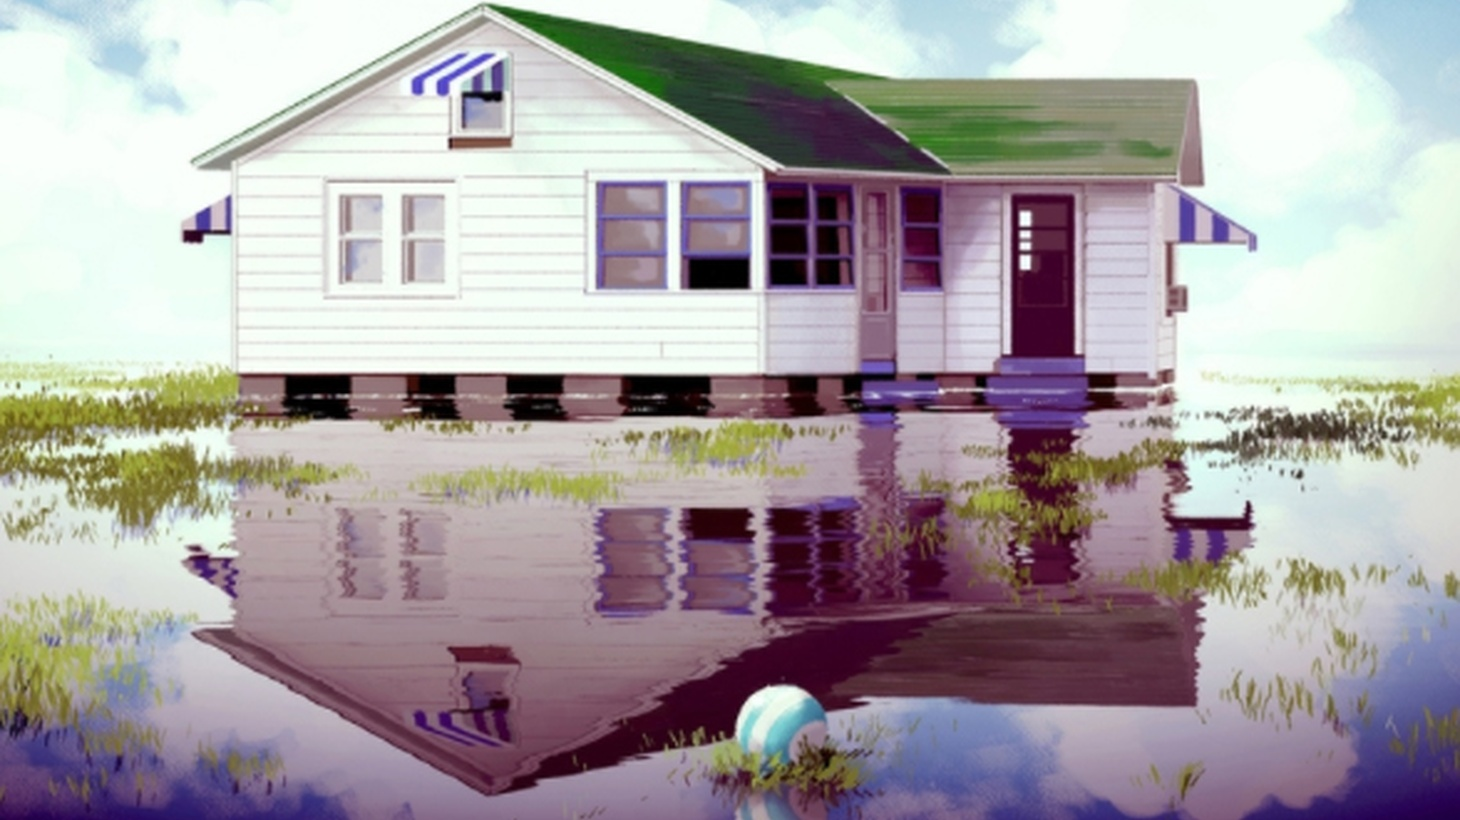 This week, we travel to Tangier Island, in the Chesapeake Bay, whose residents could become the first American refugees of climate change.